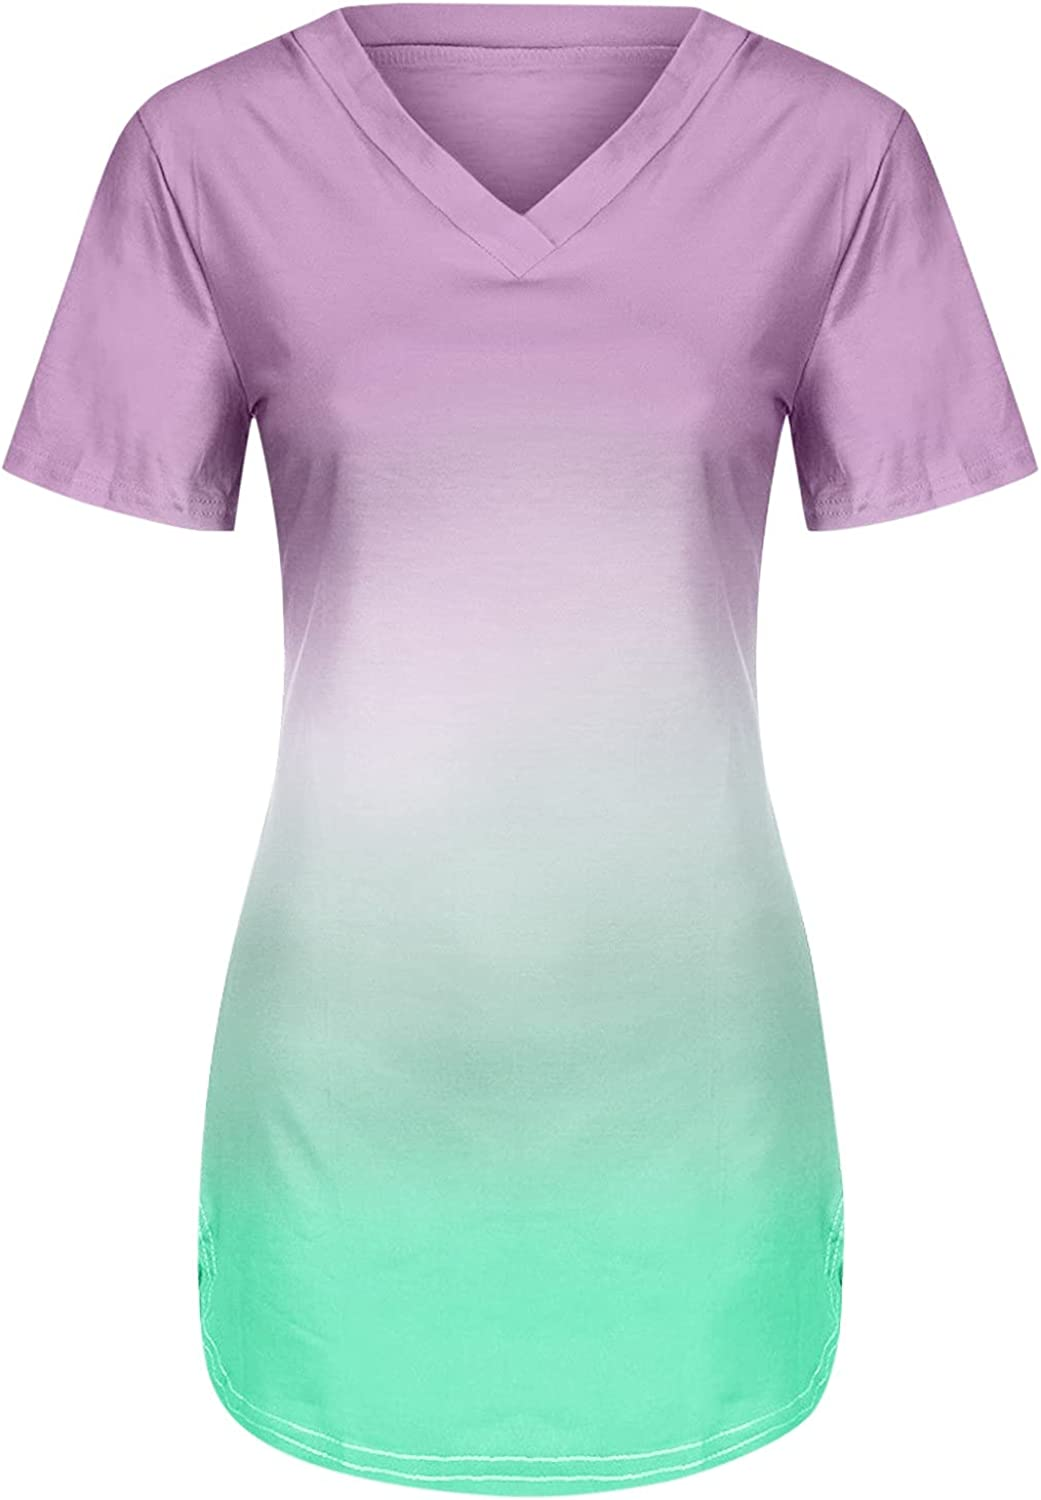 Aukbays Womens Tops V Neck T Shirts Roll Up Short Sleeve Gradient Top Tunic Casual Plus Size Basic Tees Henley Tops